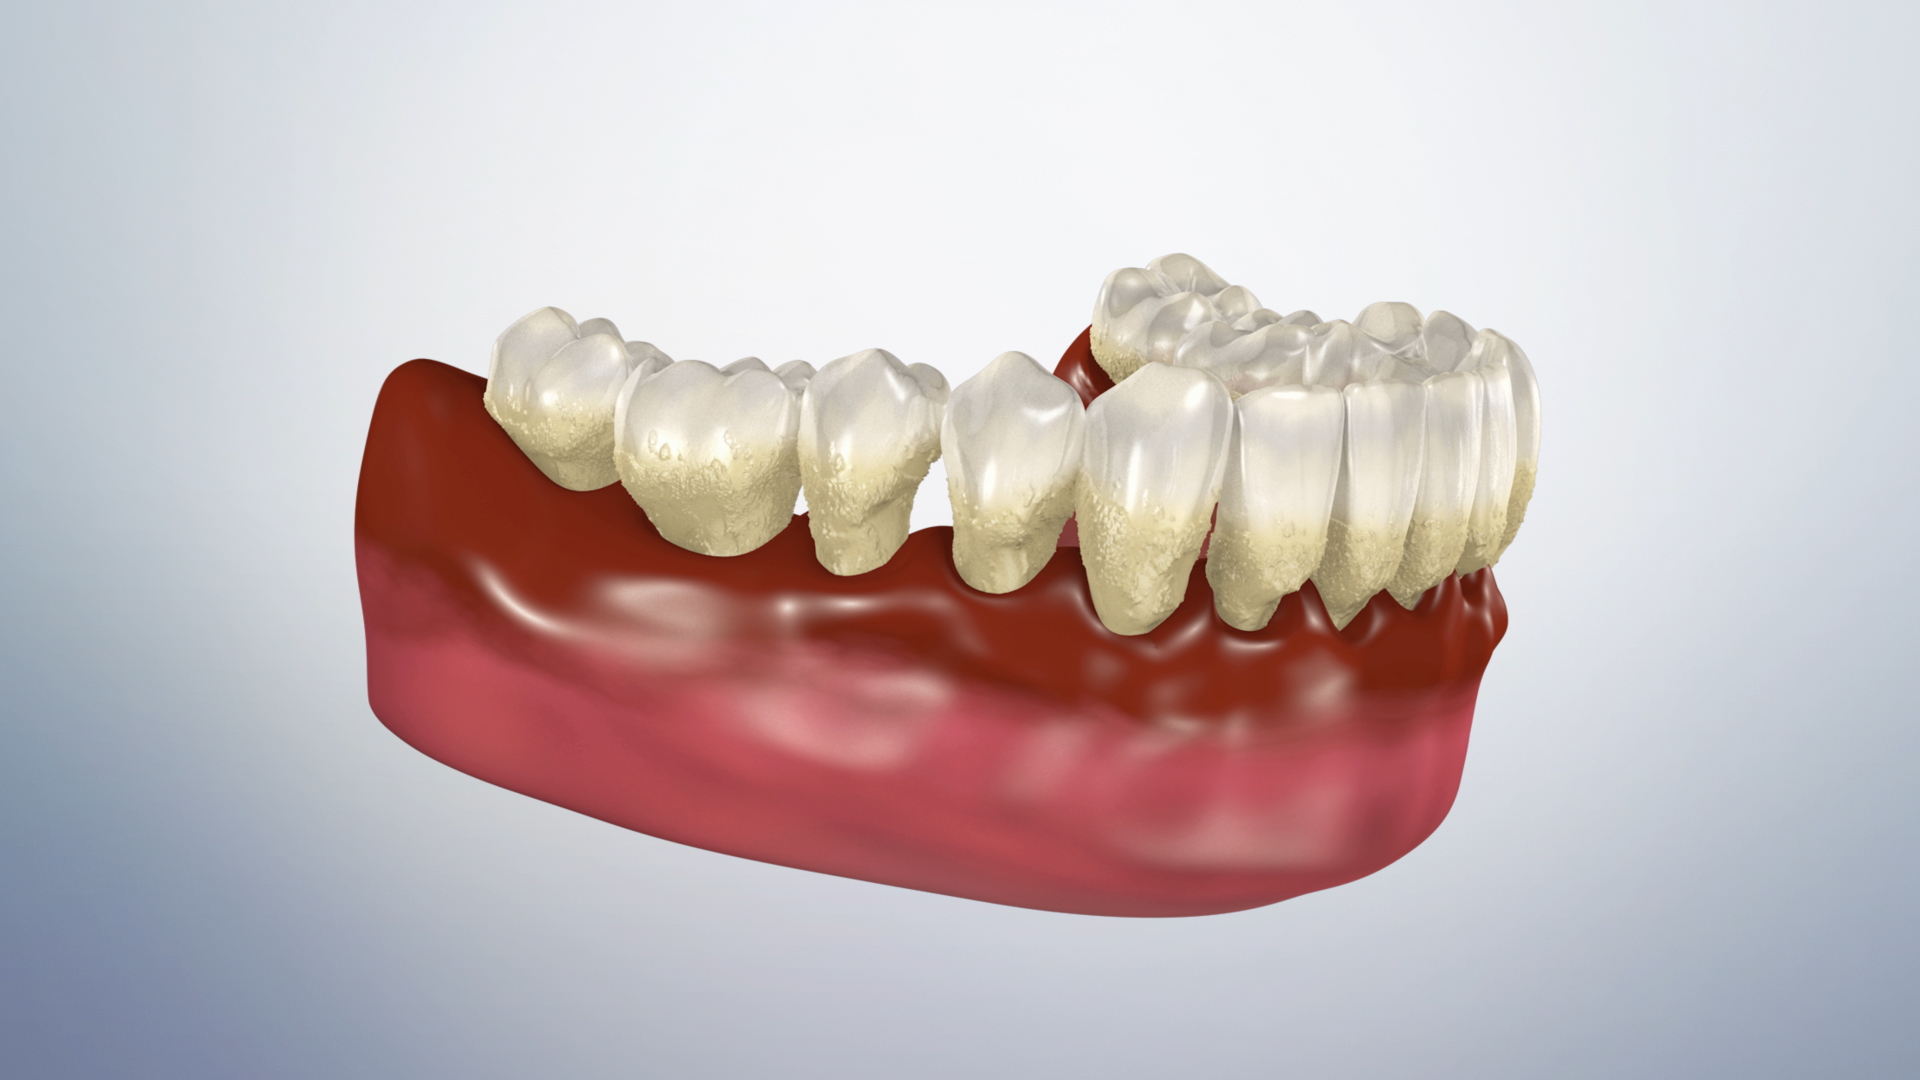 Thumbnail for a video on Periodontitis